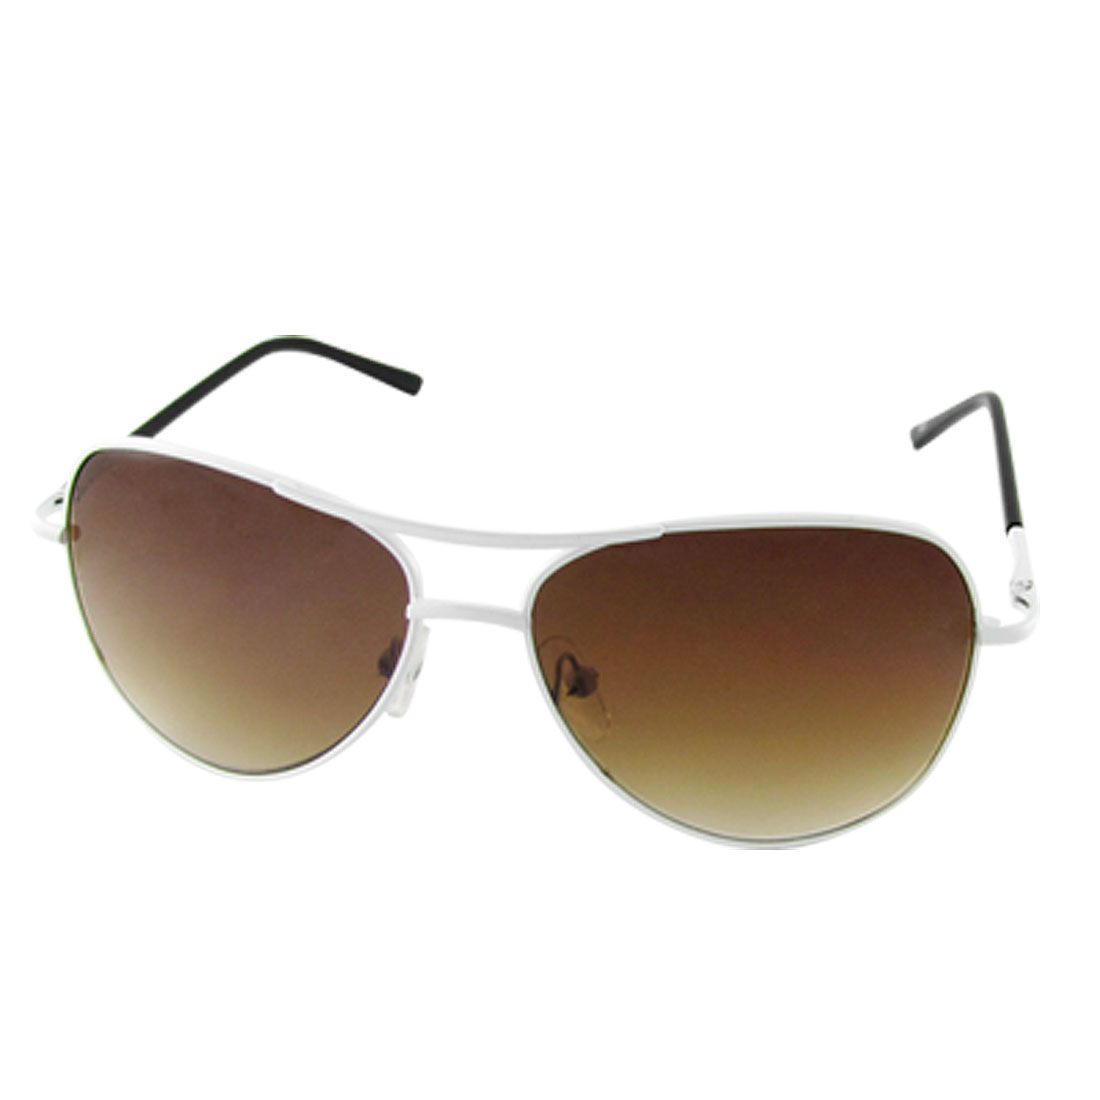 Child White Full Rim Tan Lens Double Bridge Sunglasses